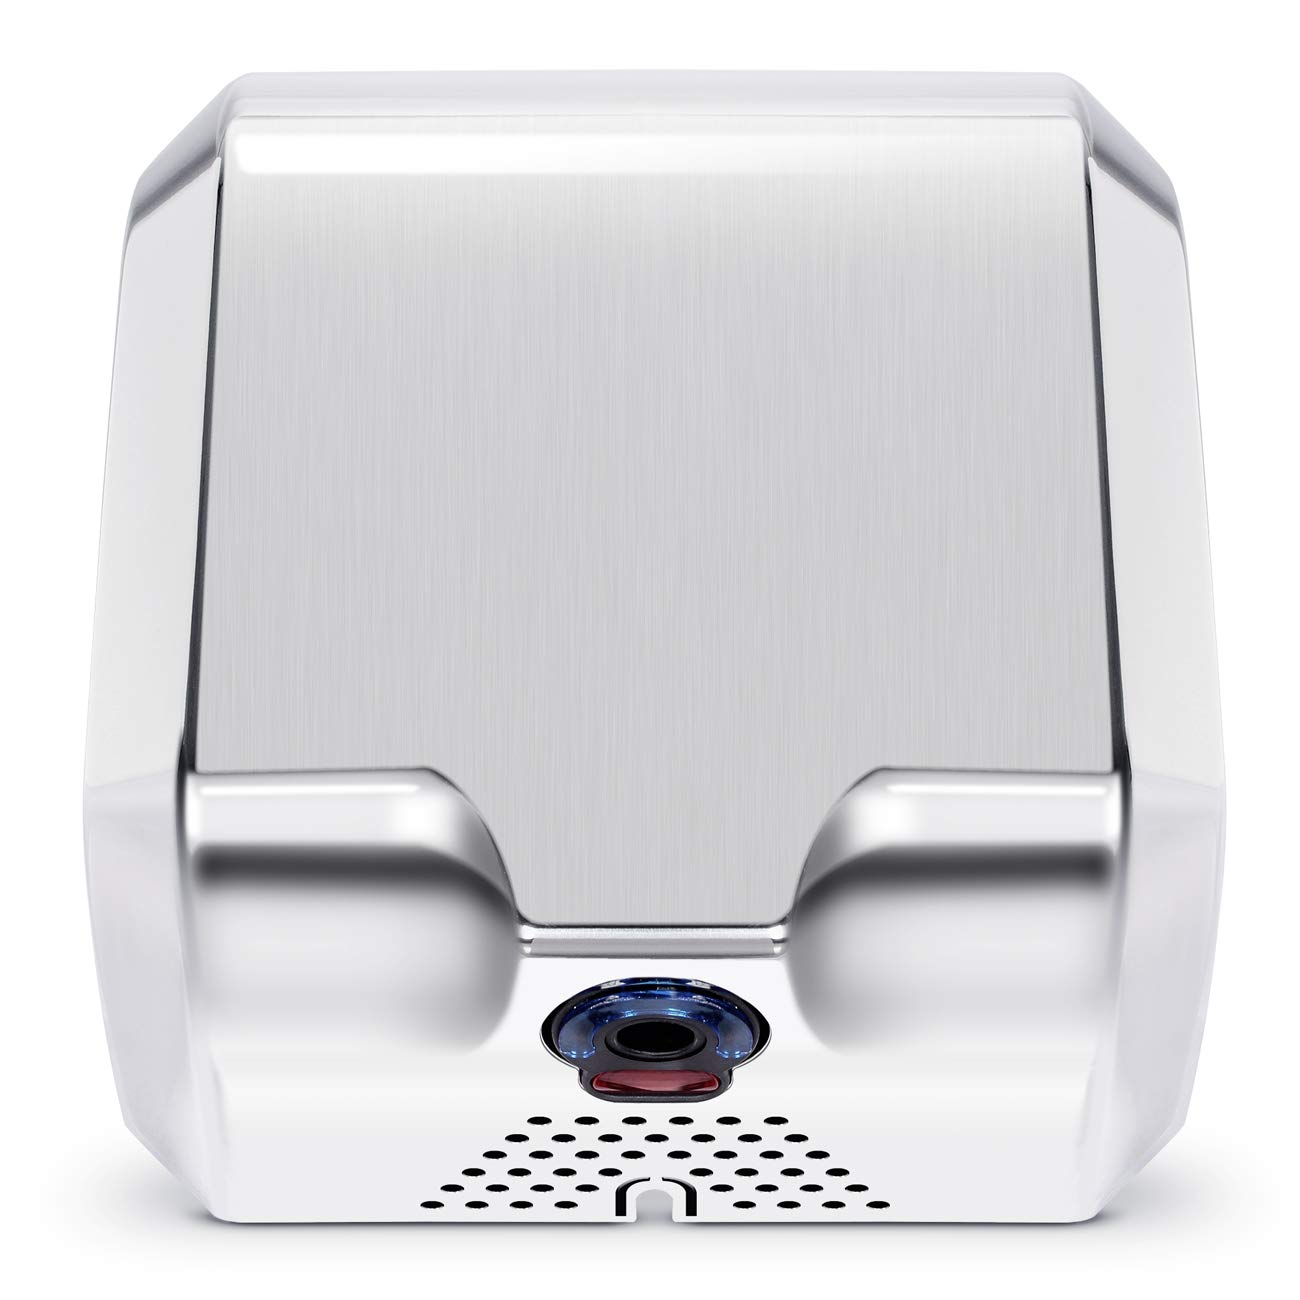 ARKSEN Surface Mounted Automatic Electric Hand Dryer Commercial High Speed 100m/s, Silver, Instant Heat & Dry